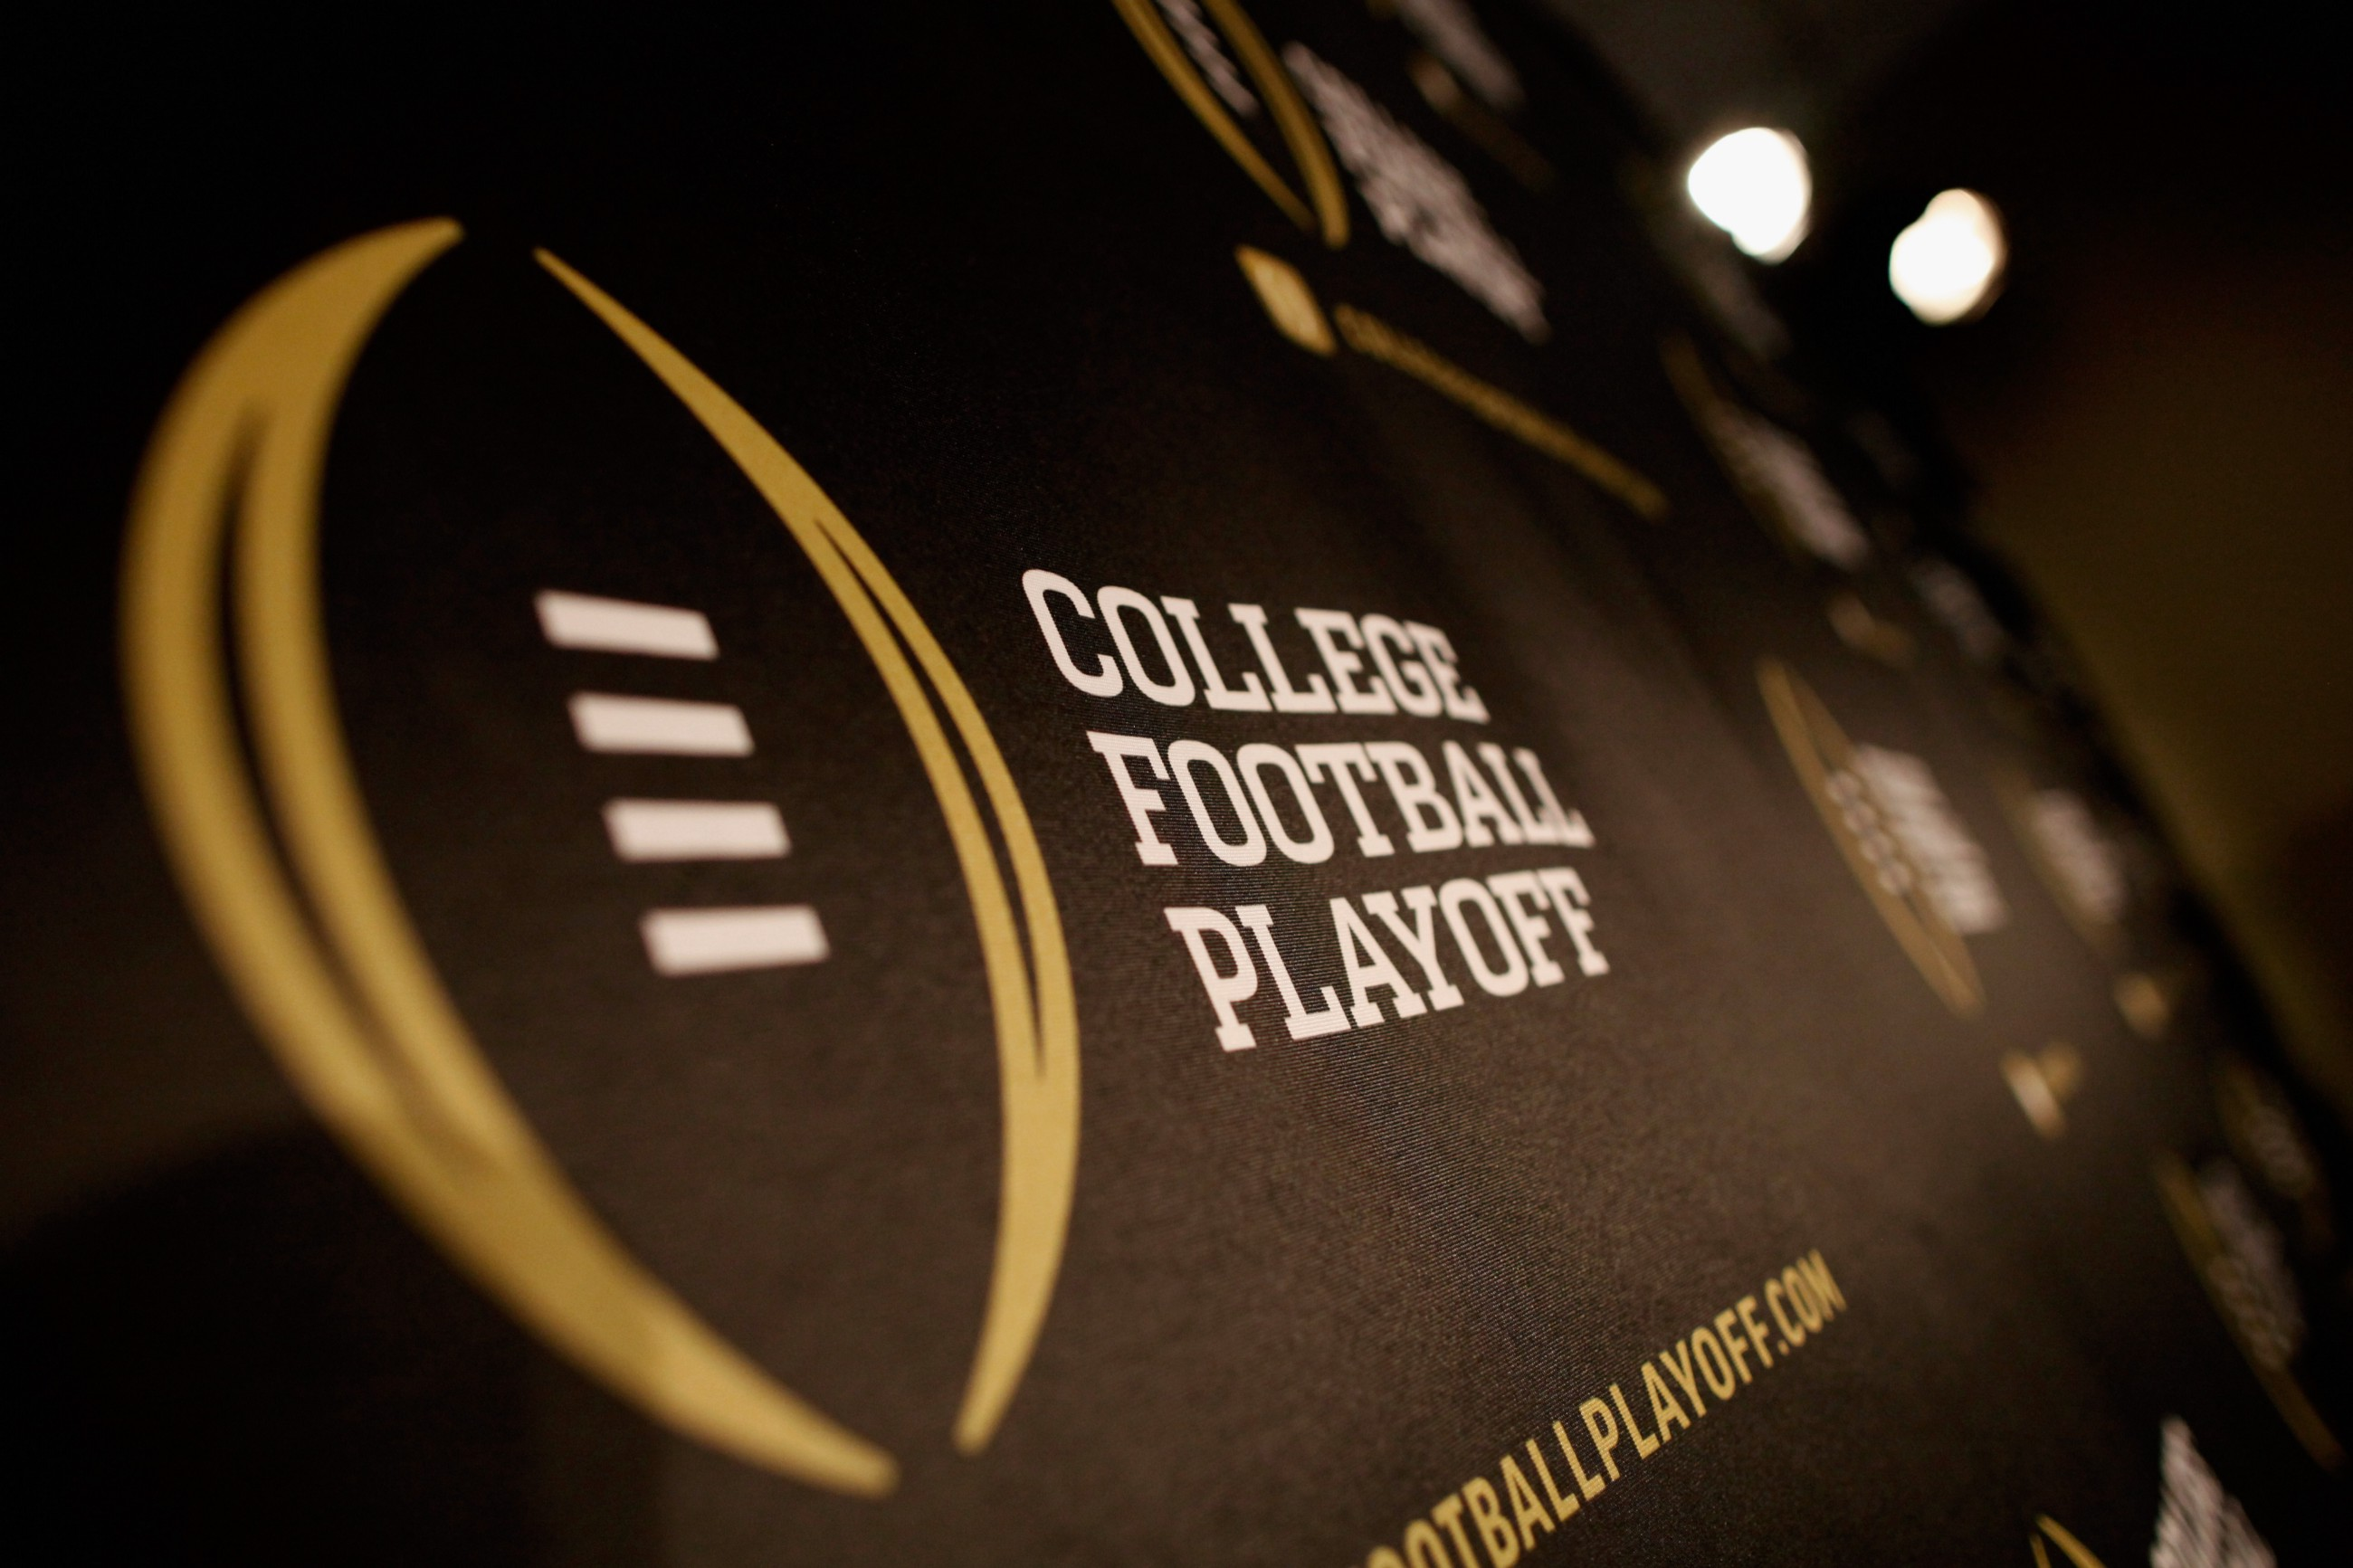 The Case For Expanding The College Football Playoff